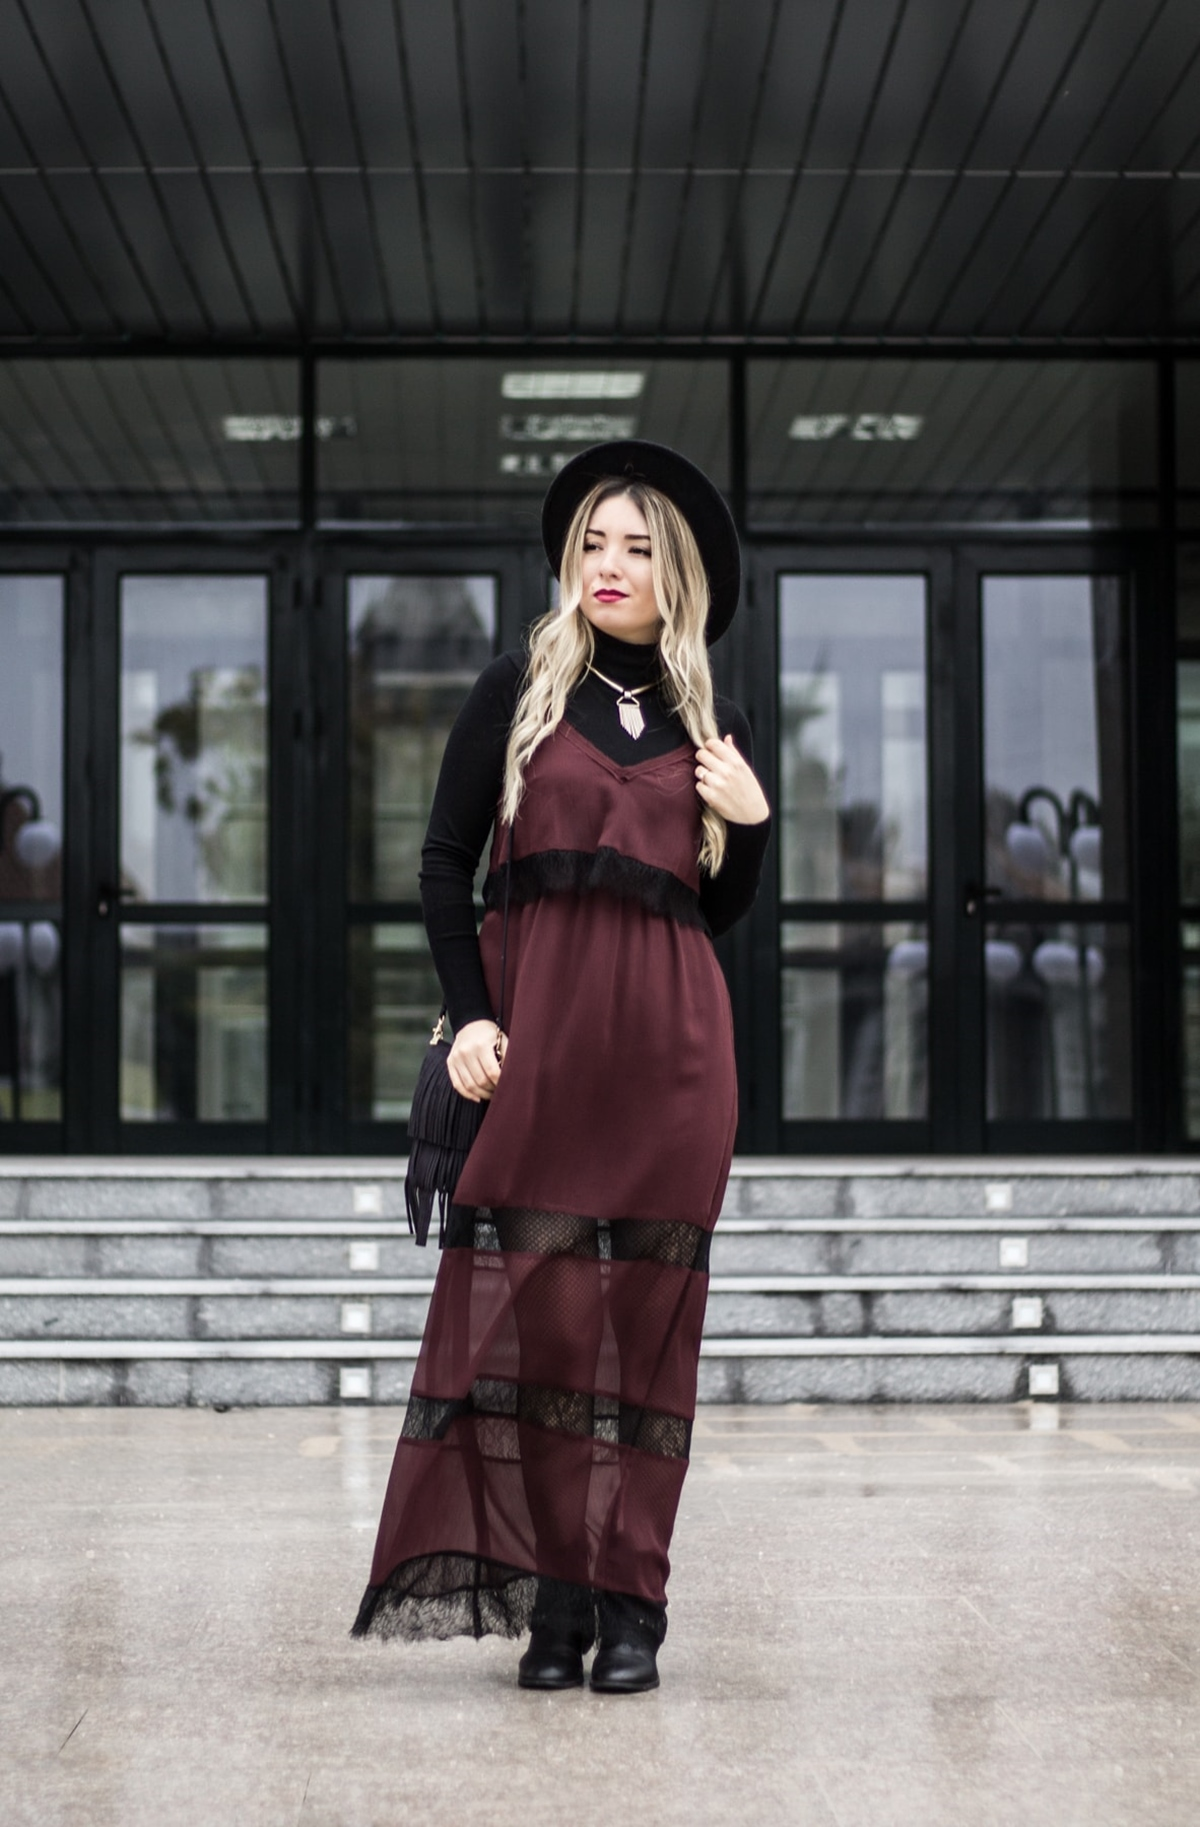 Street style: burgundy slip dress, black lace, black turtleneck, autumn, aw 16/17 trends, hm, zara, blogger andreea ristea